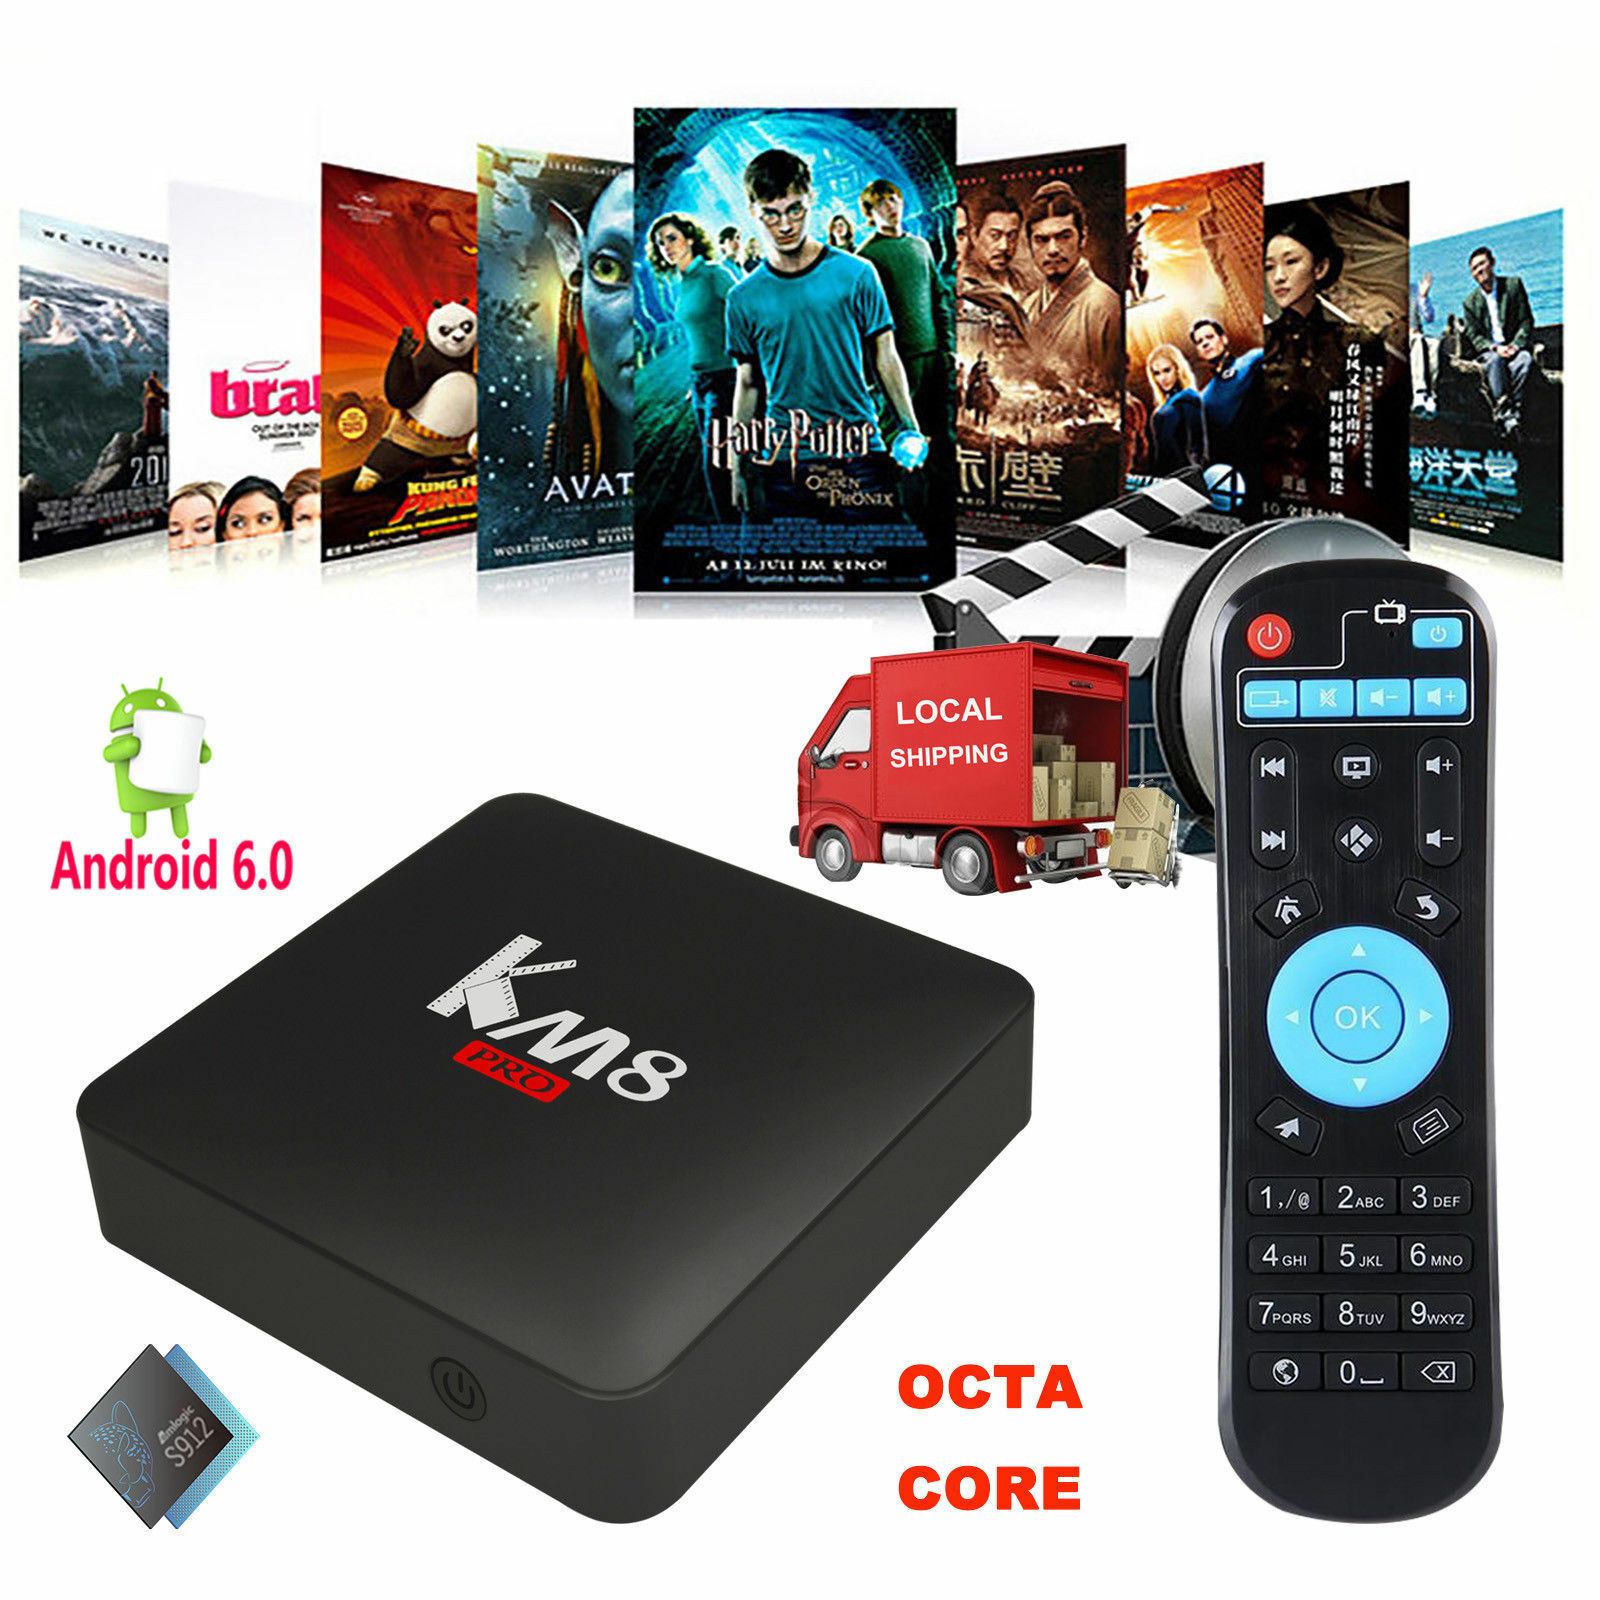 Octa Core Amlogic S912 Android 6.0 2+8GB 4K Smart TV BOX KM8 PRO Network Media X